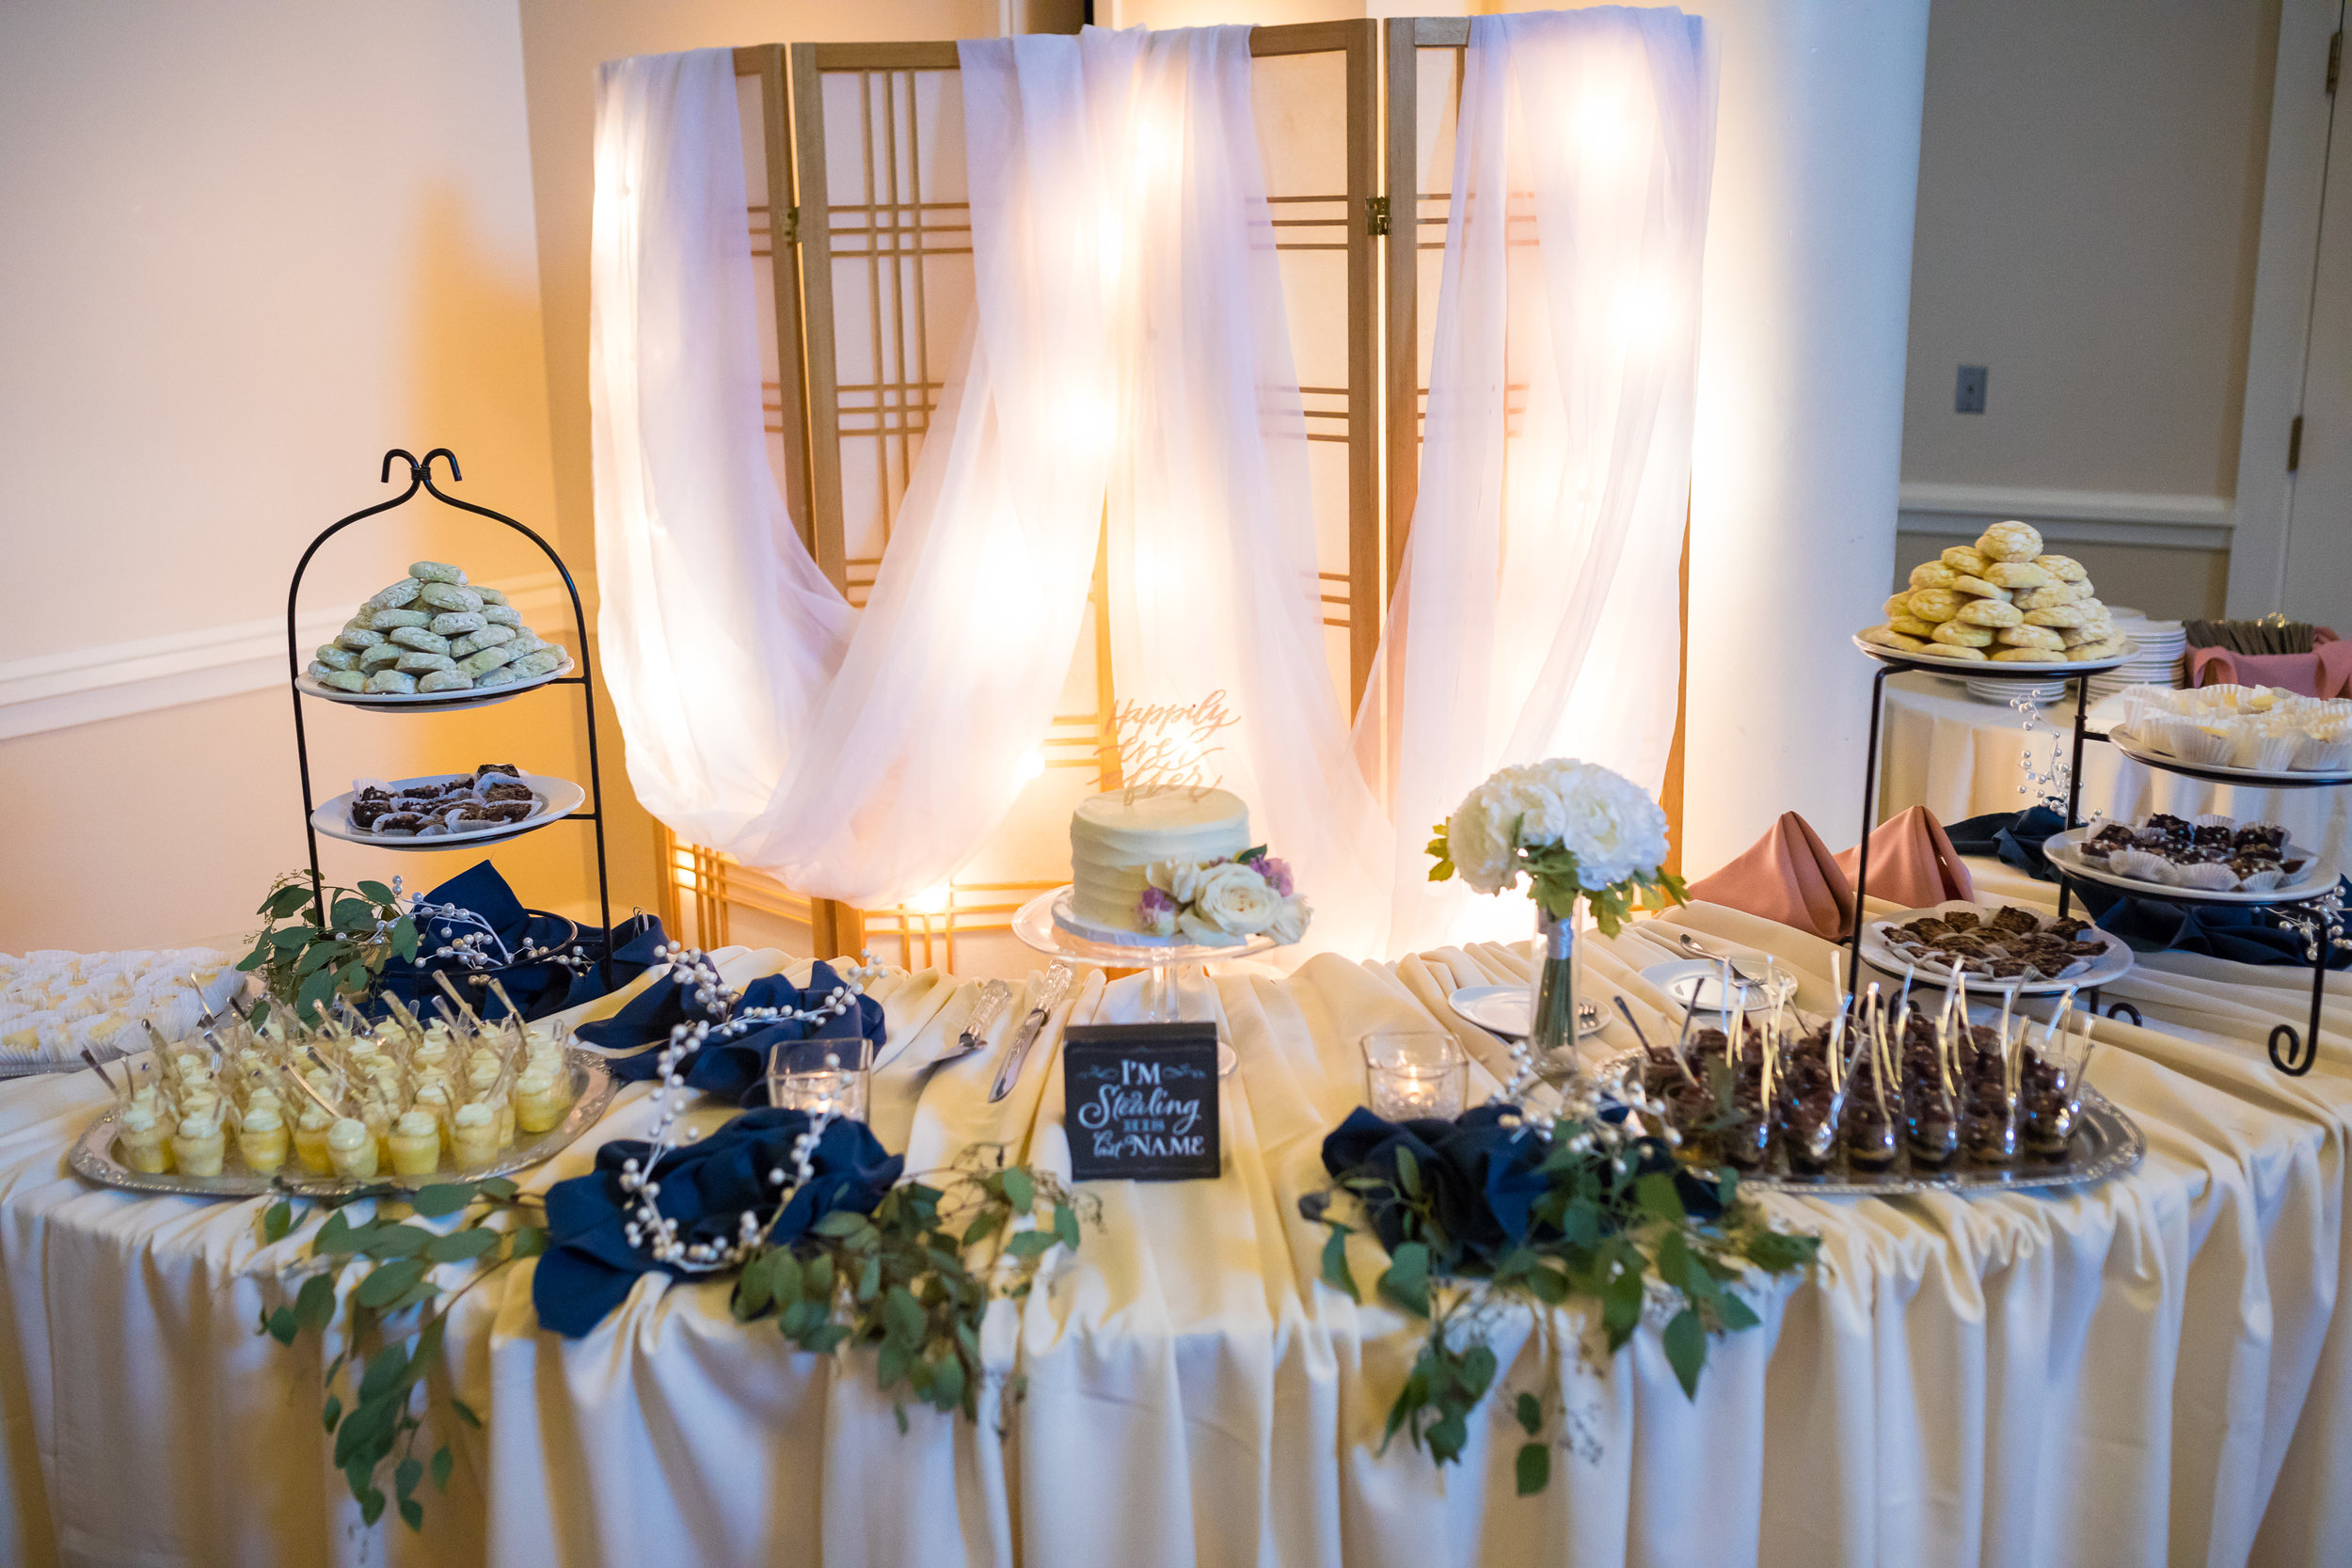 Perfectly Planned Moments Eugene Oregon Wedding Planner Downtown Athletic Club Dessert Table.jpg